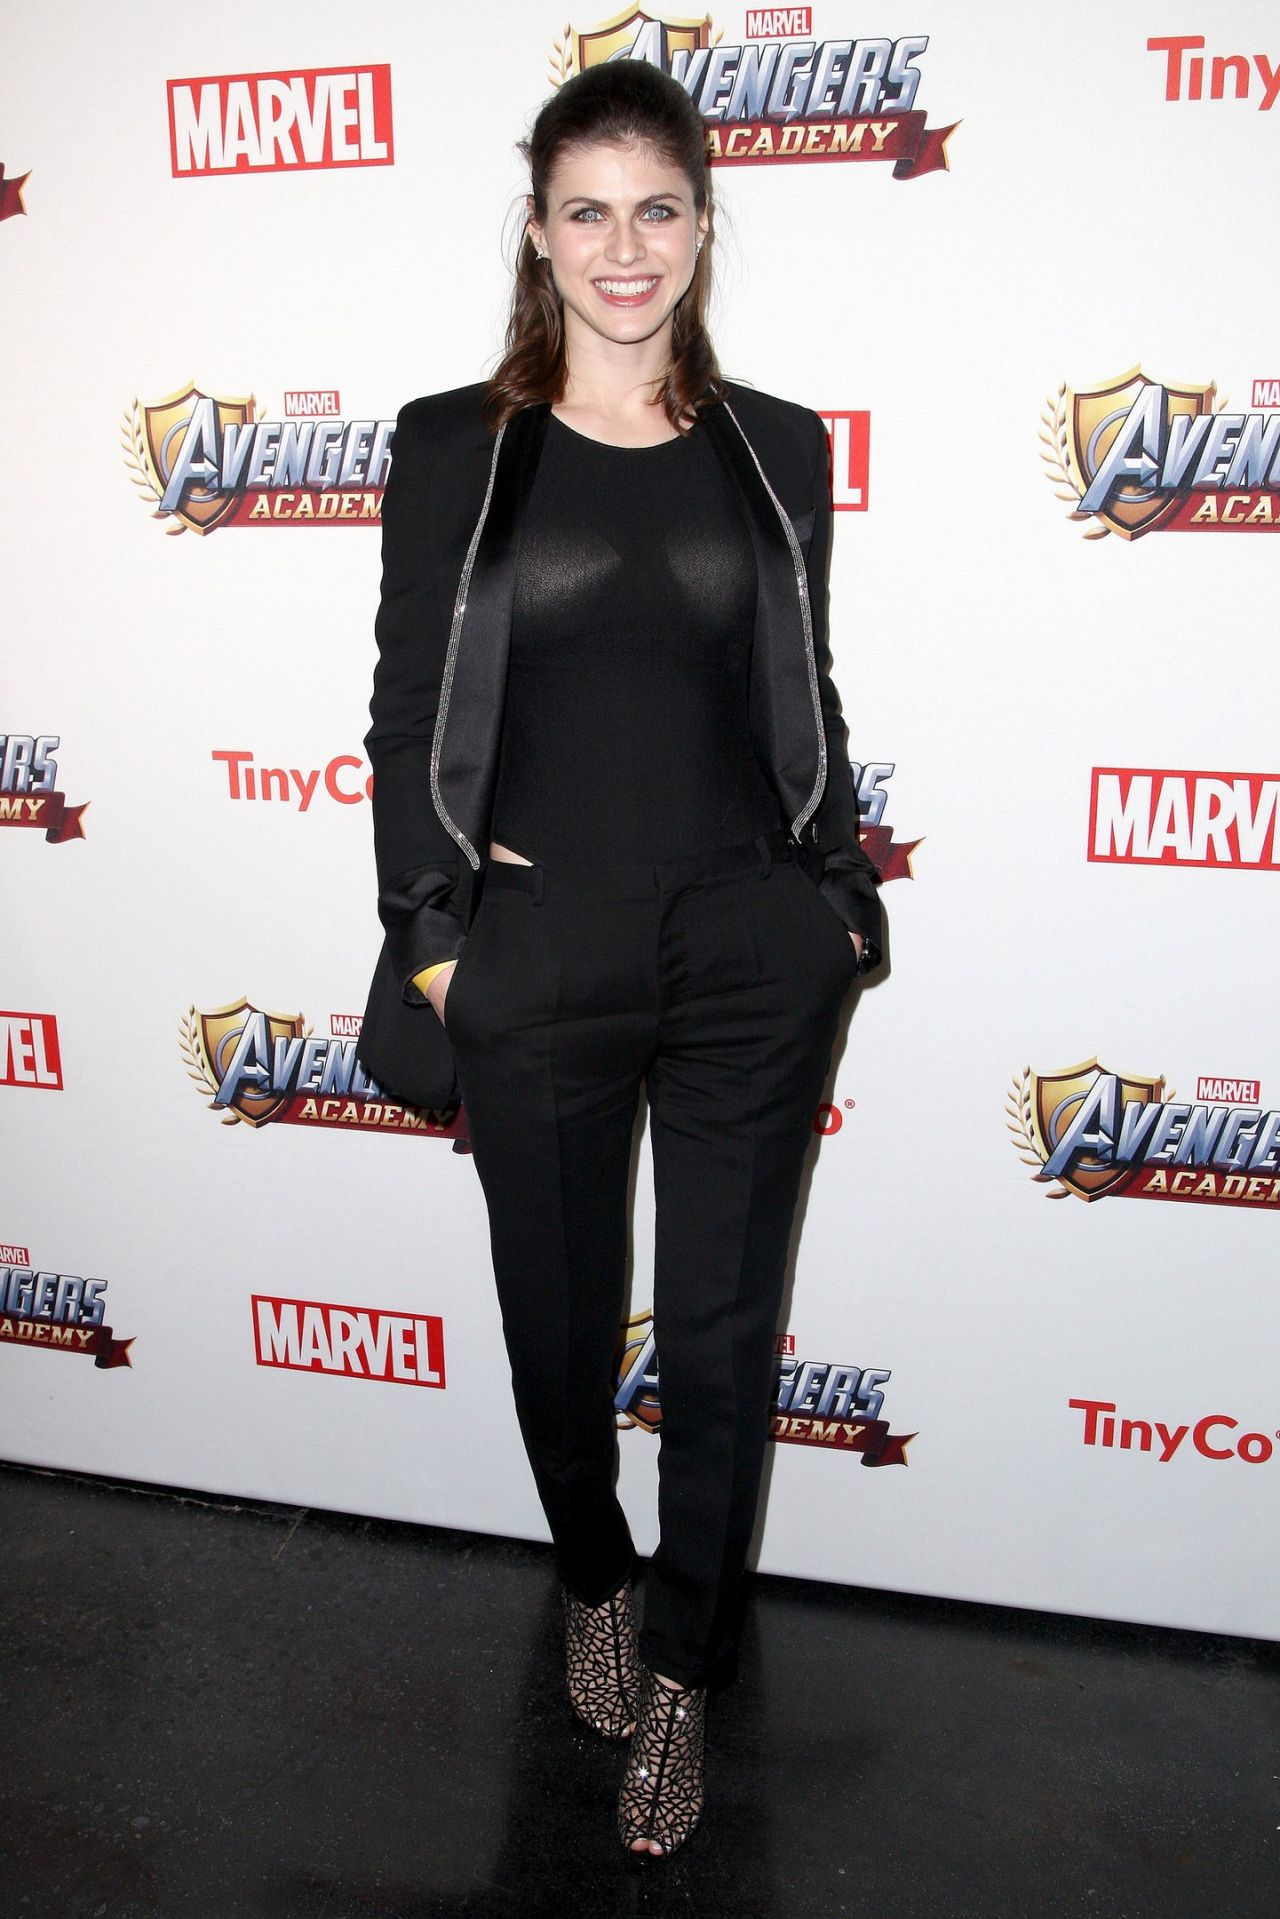 Alexandra Daddario - MARVEL Avengers Academy's Party in Los Angeles ...